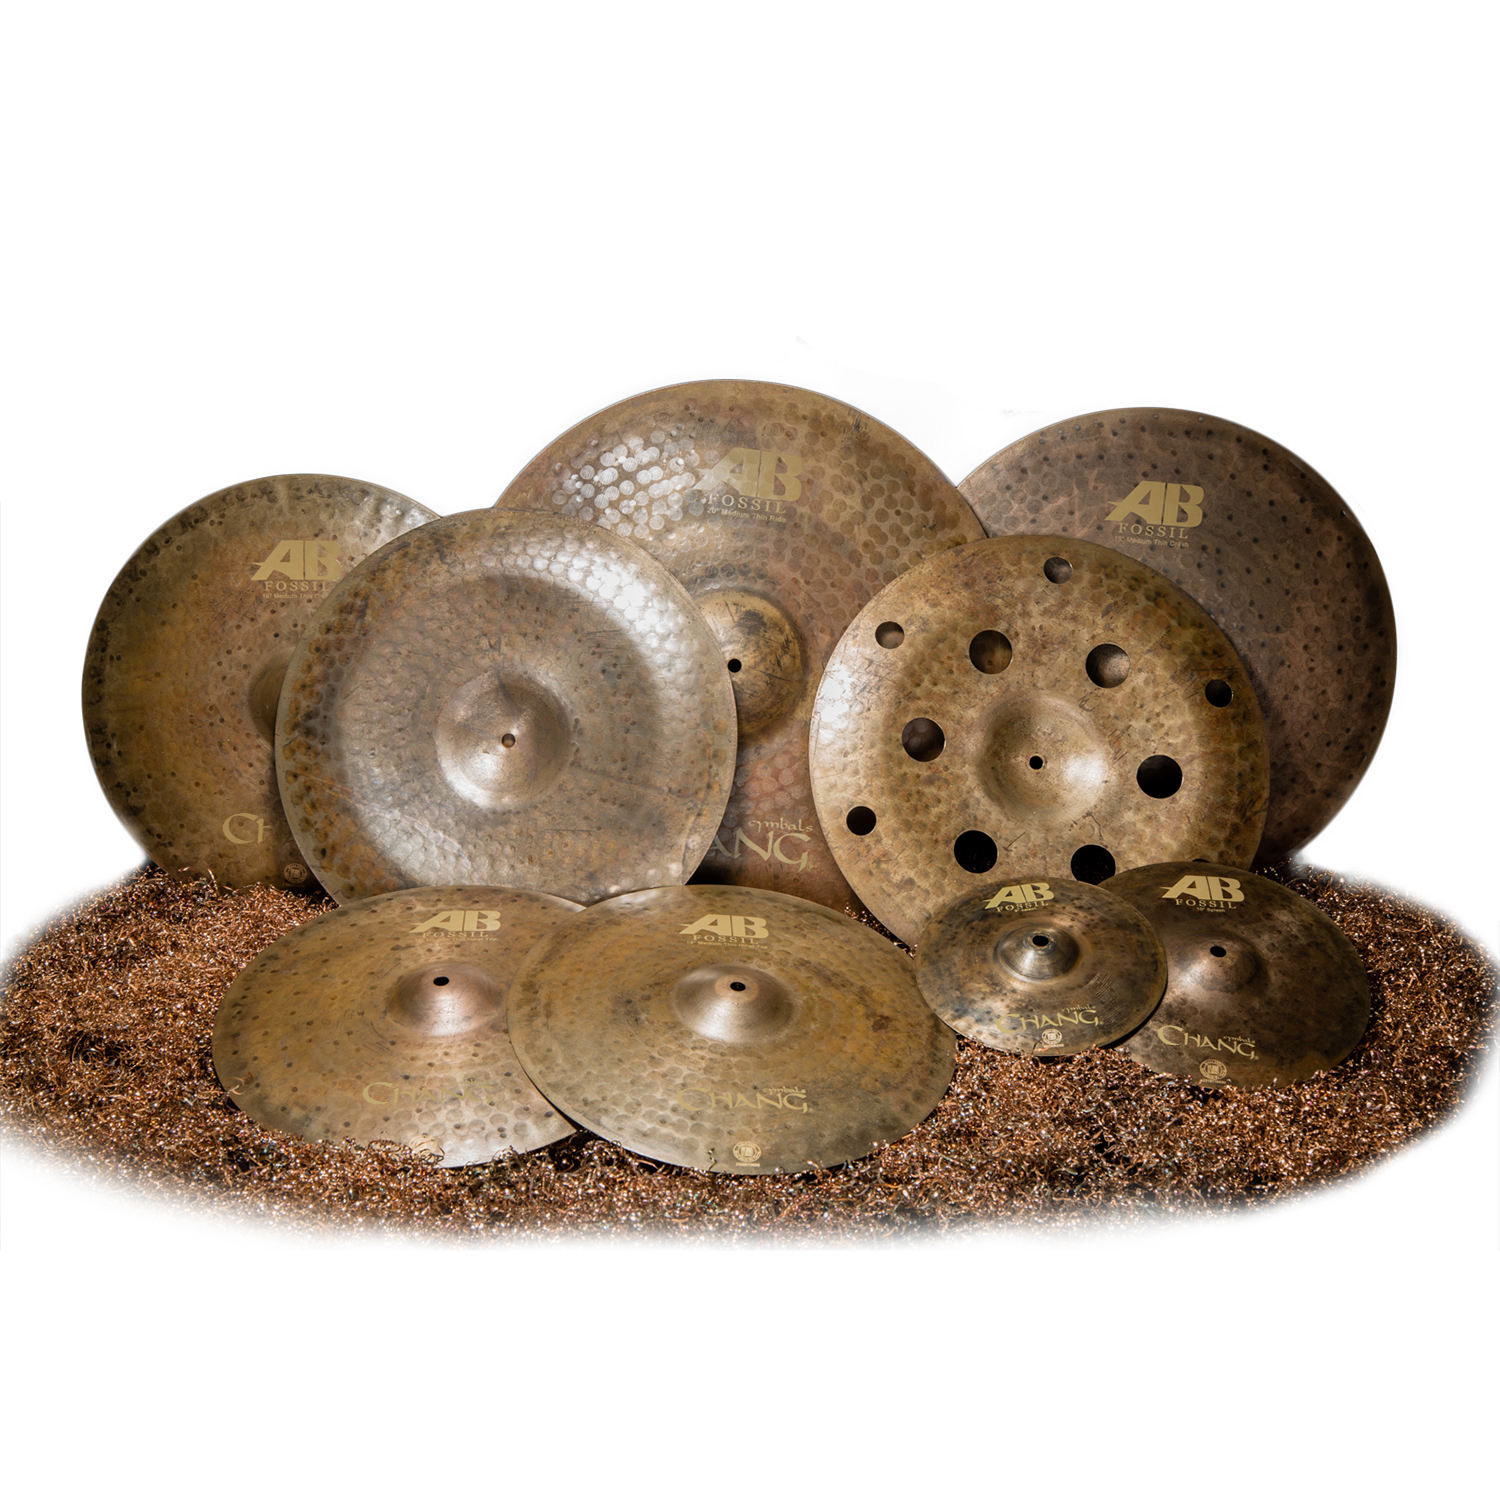 Chang Cymbals AB Fossil Cymbals Pack Drum Cymbals Simbal